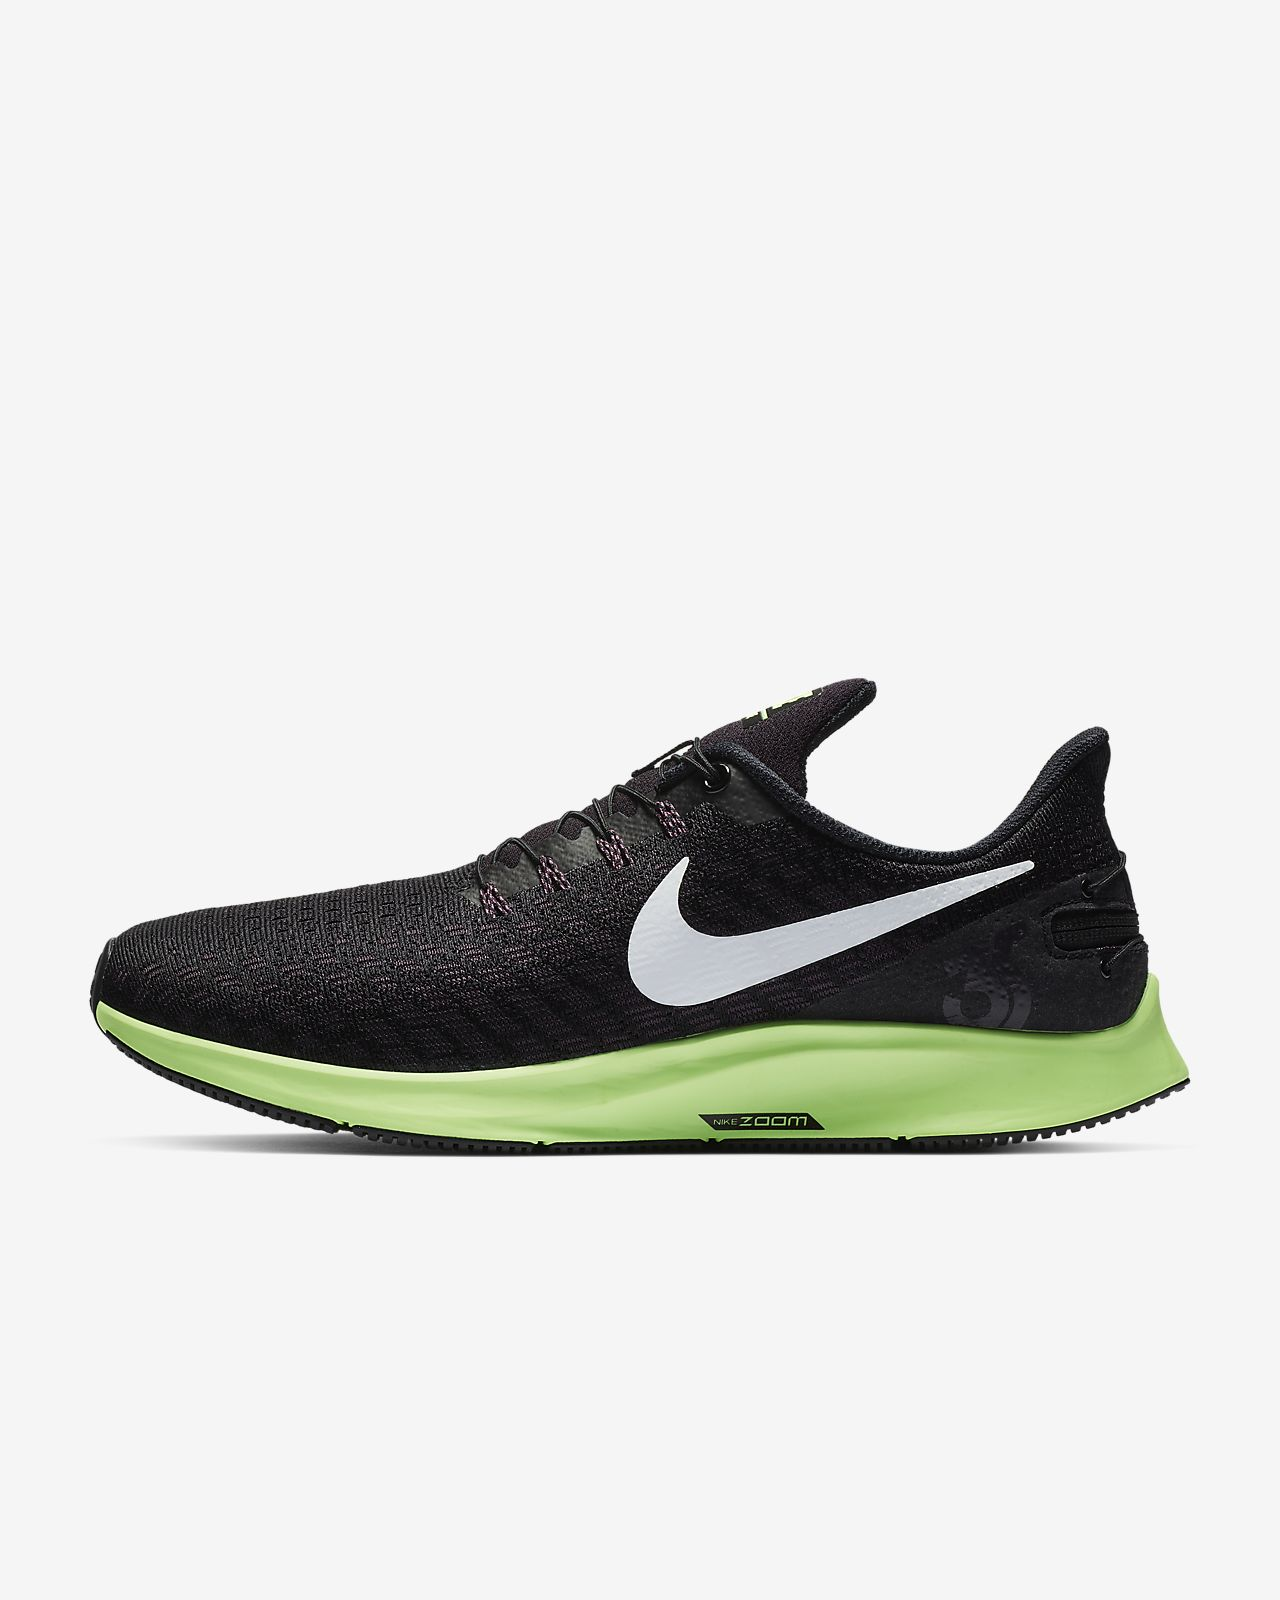 the latest 5c1b1 c64d2 ... Calzado de running para hombre Nike Air Zoom Pegasus 35 FlyEase